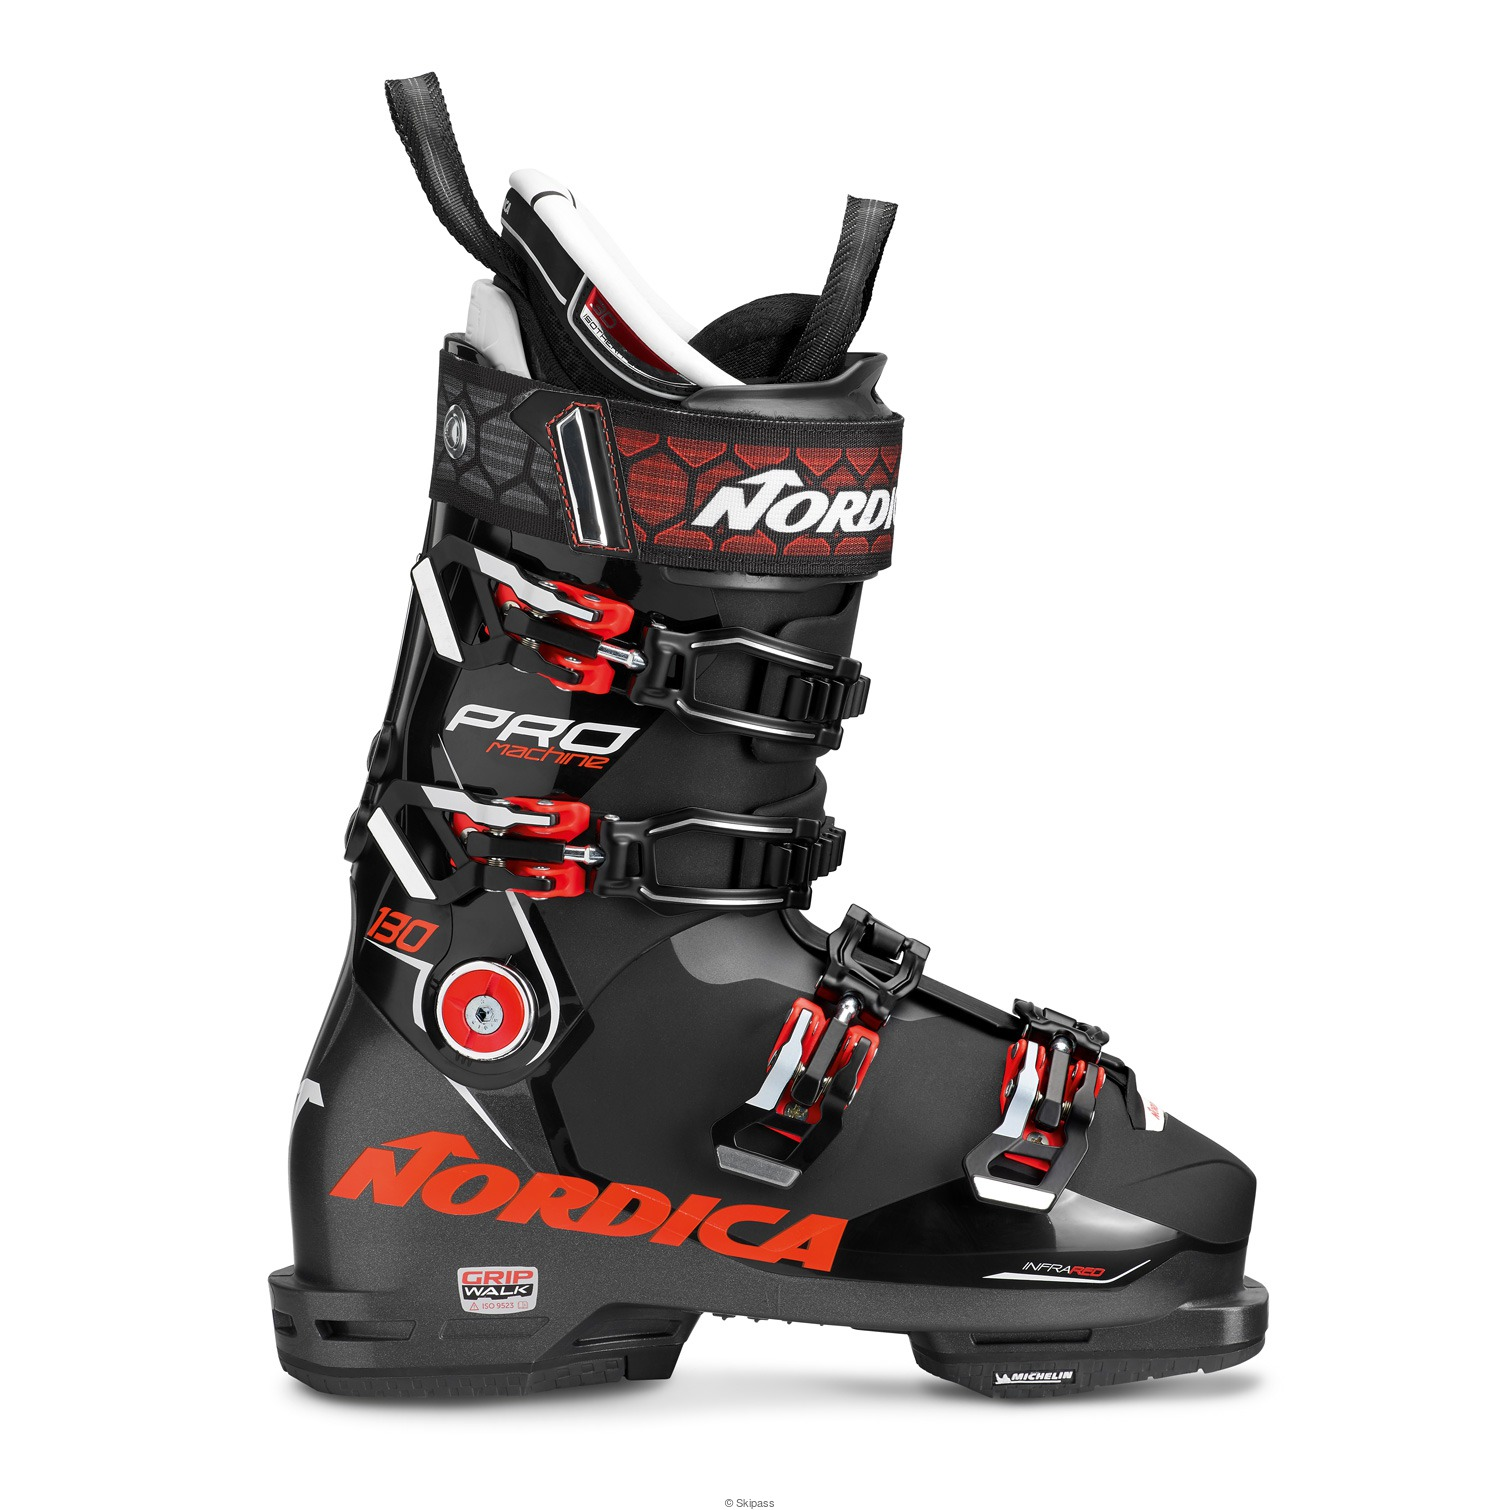 Chaussures ski Nordica Pro Machine 120 Chaussures all mountain